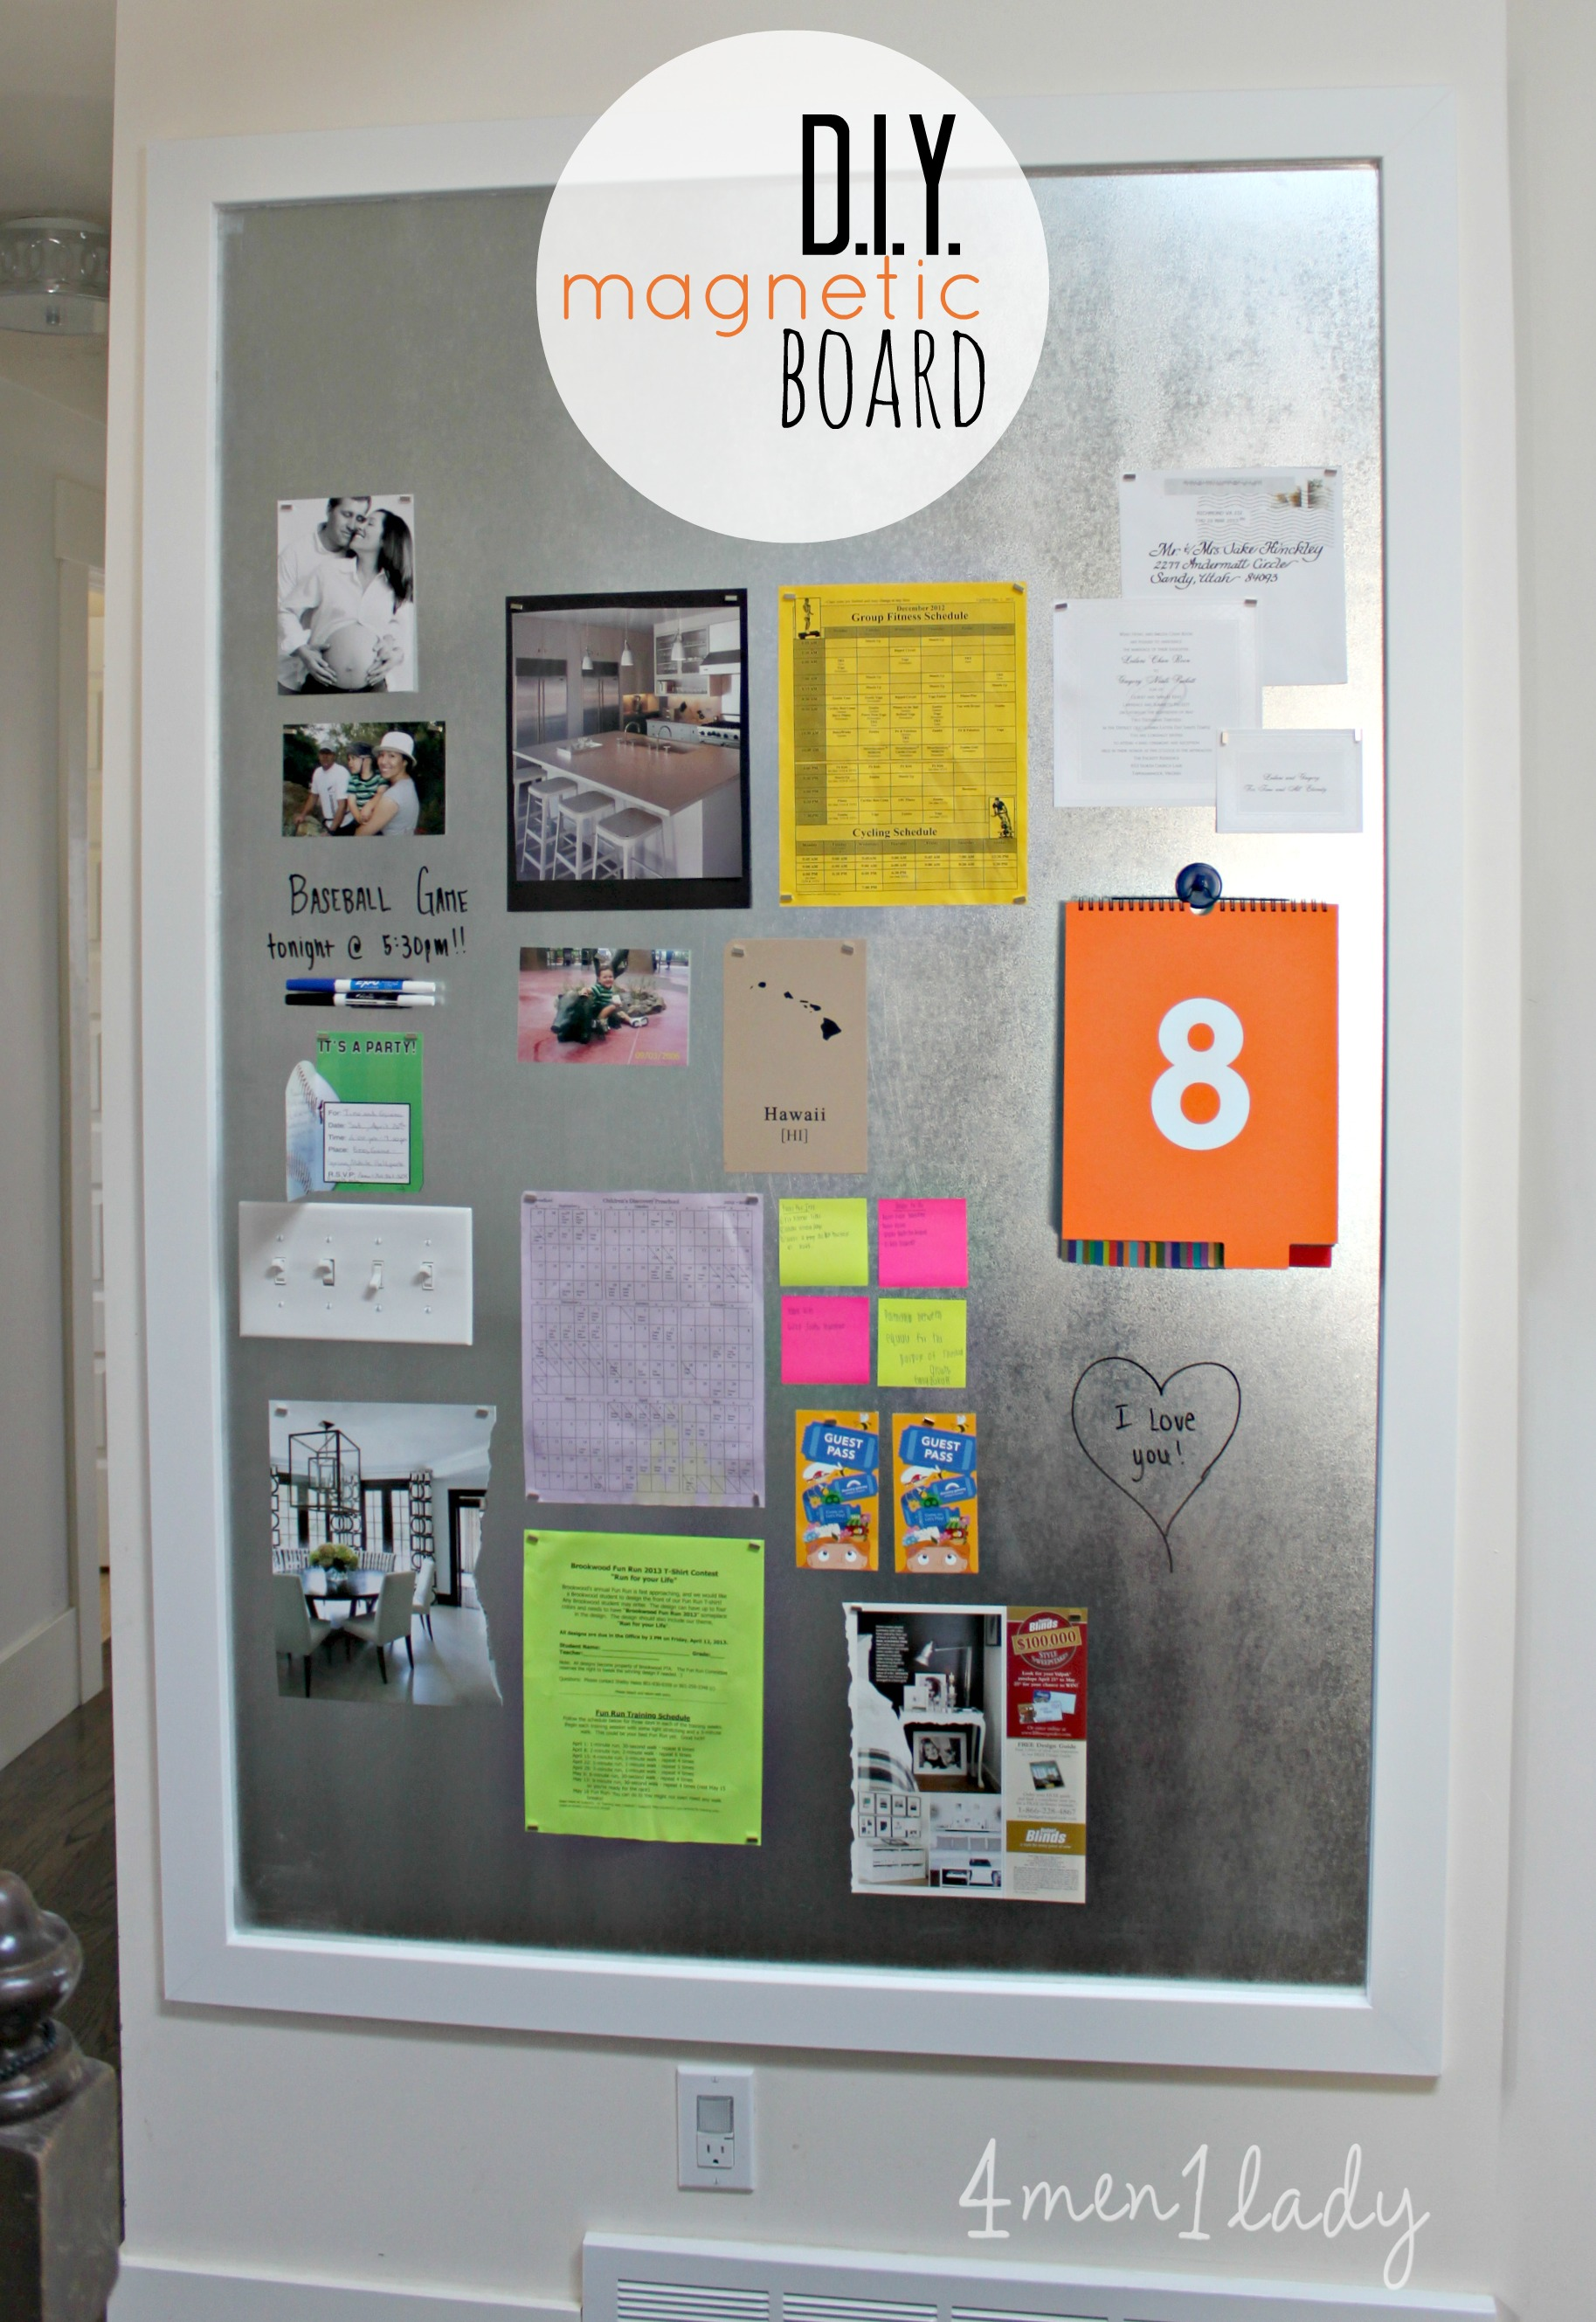 diy magnetic board - img